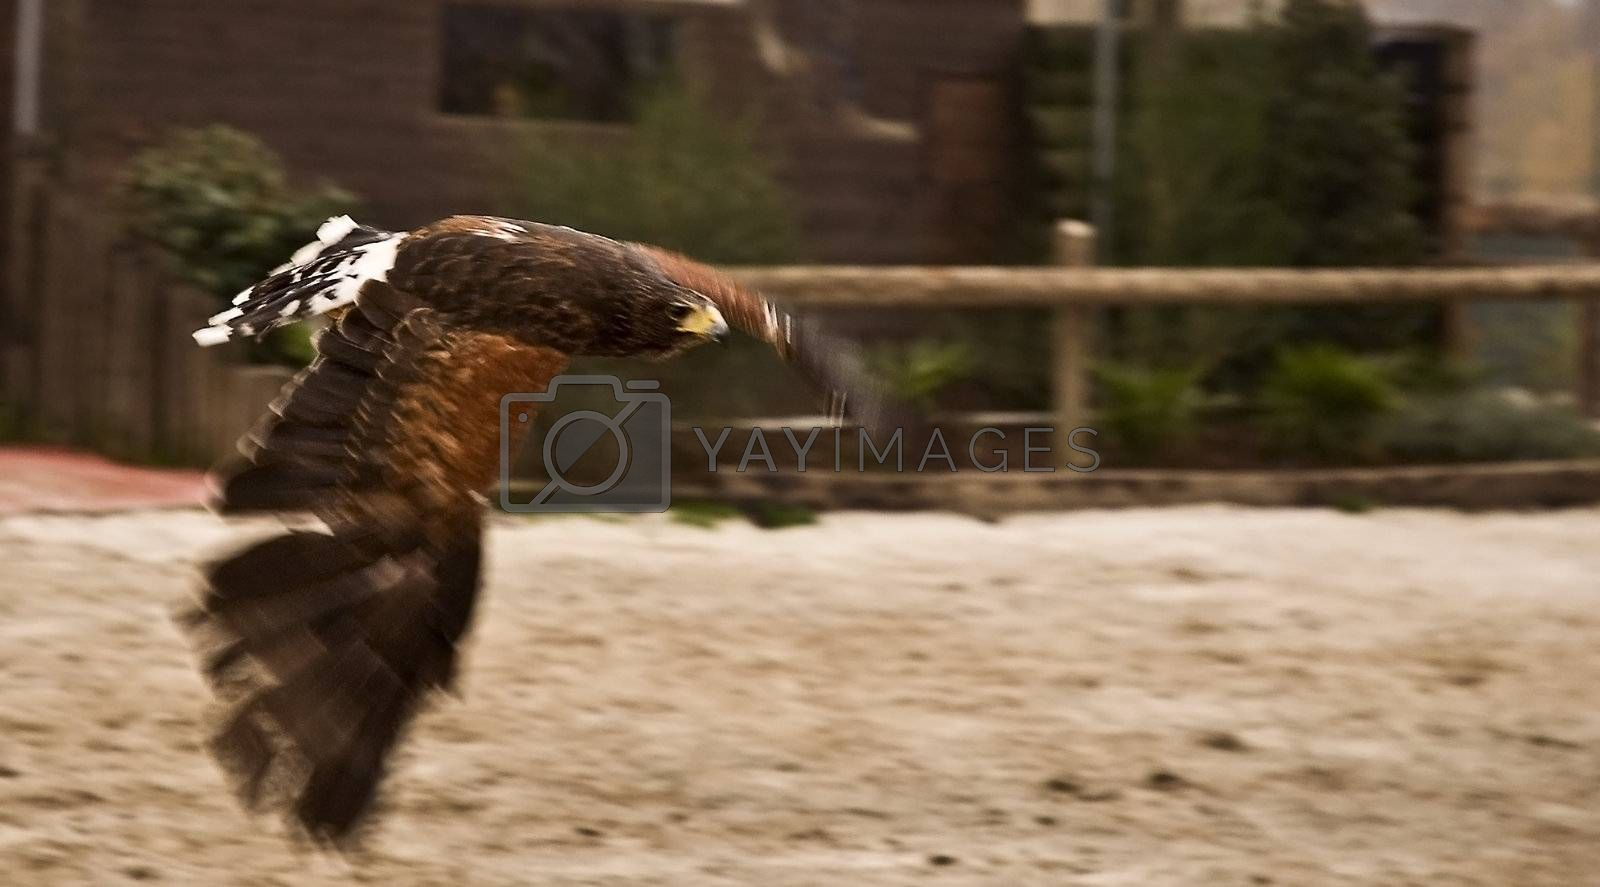 Eagle in flight on blurred background